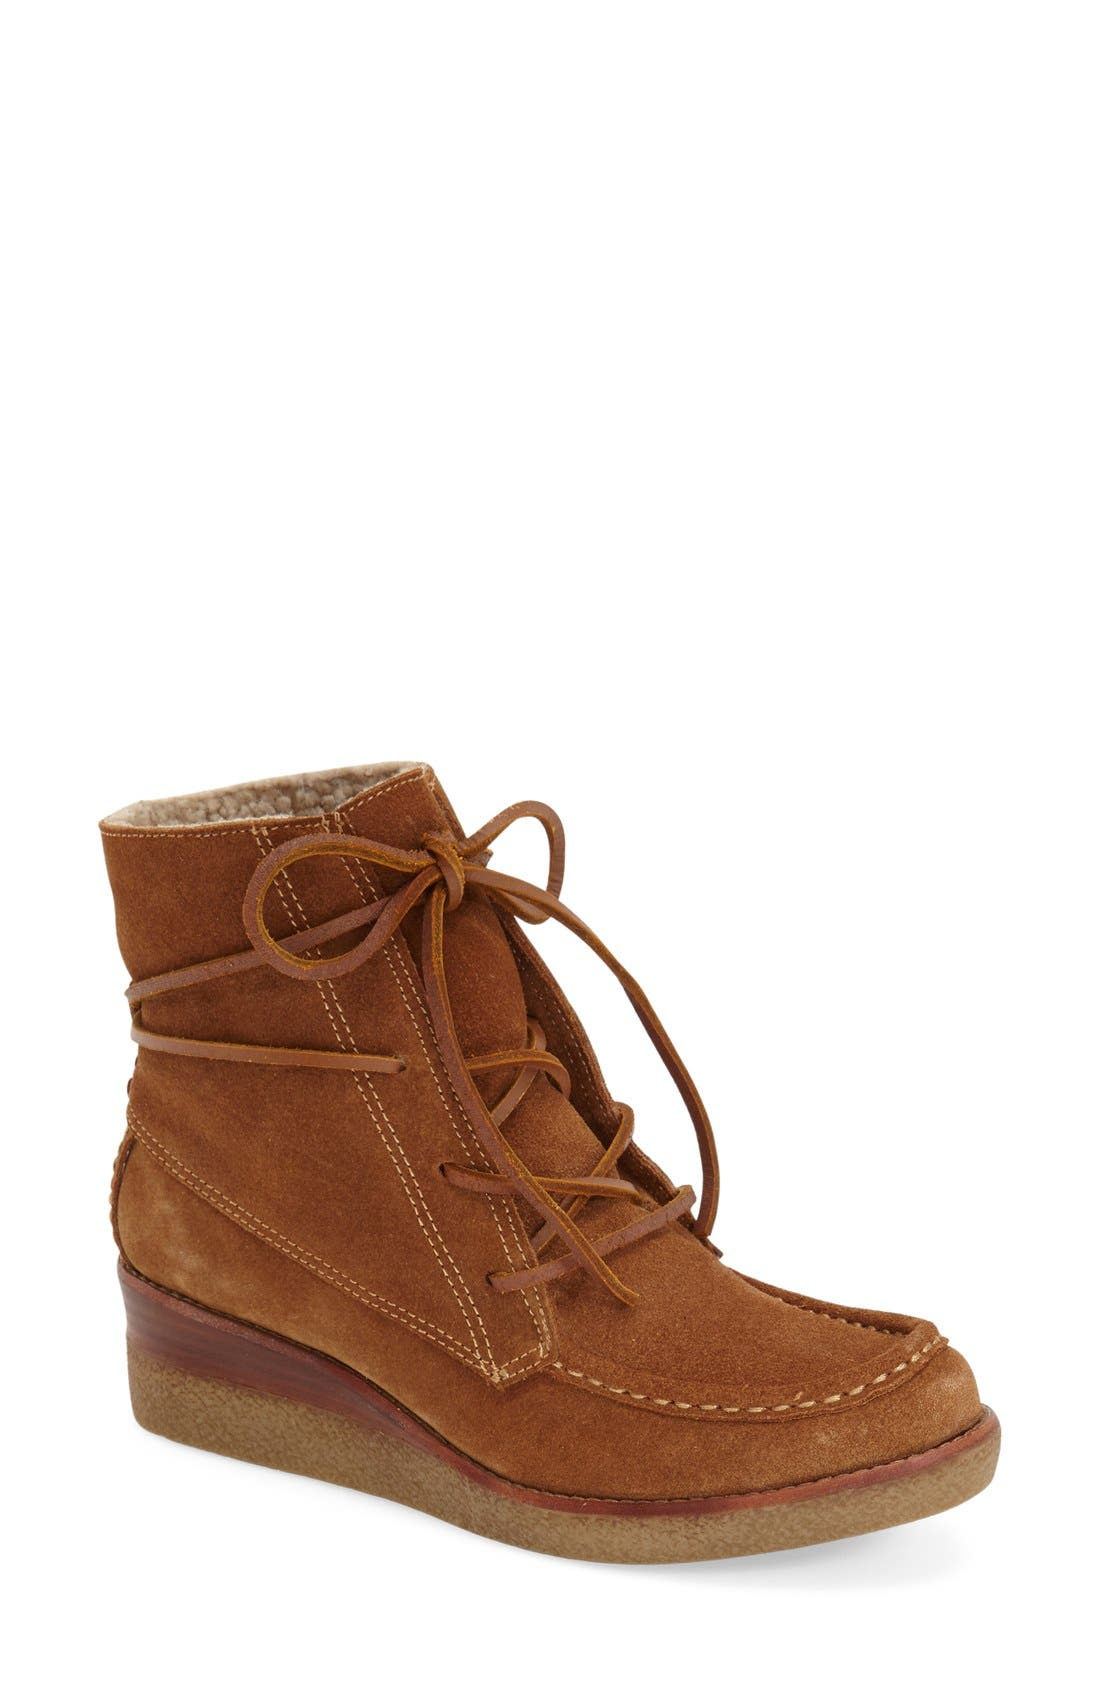 Main Image - Dolce Vita 'Sylvia' Lace Up Bootie (Women)